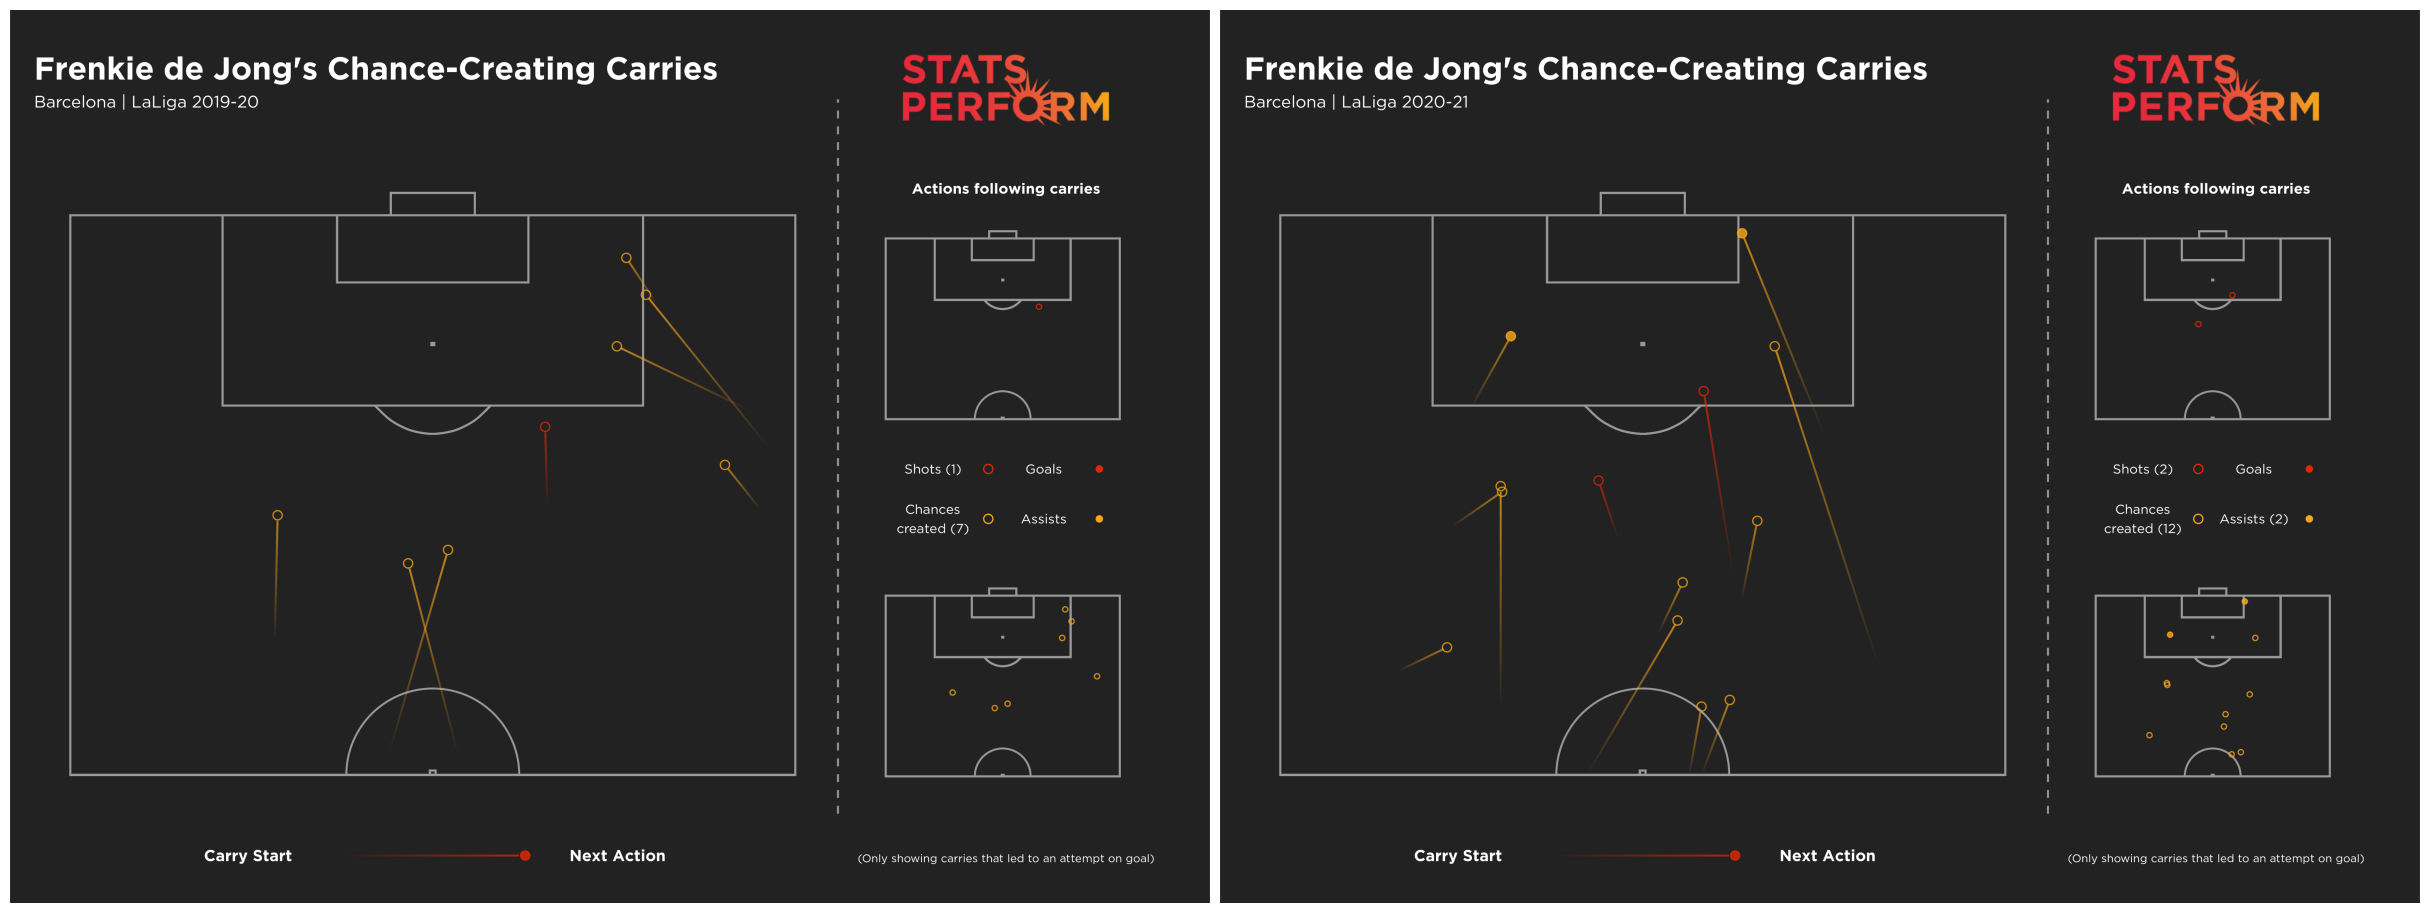 Frenkie de Jong's already created significantly more chances after carries than in 2019-20